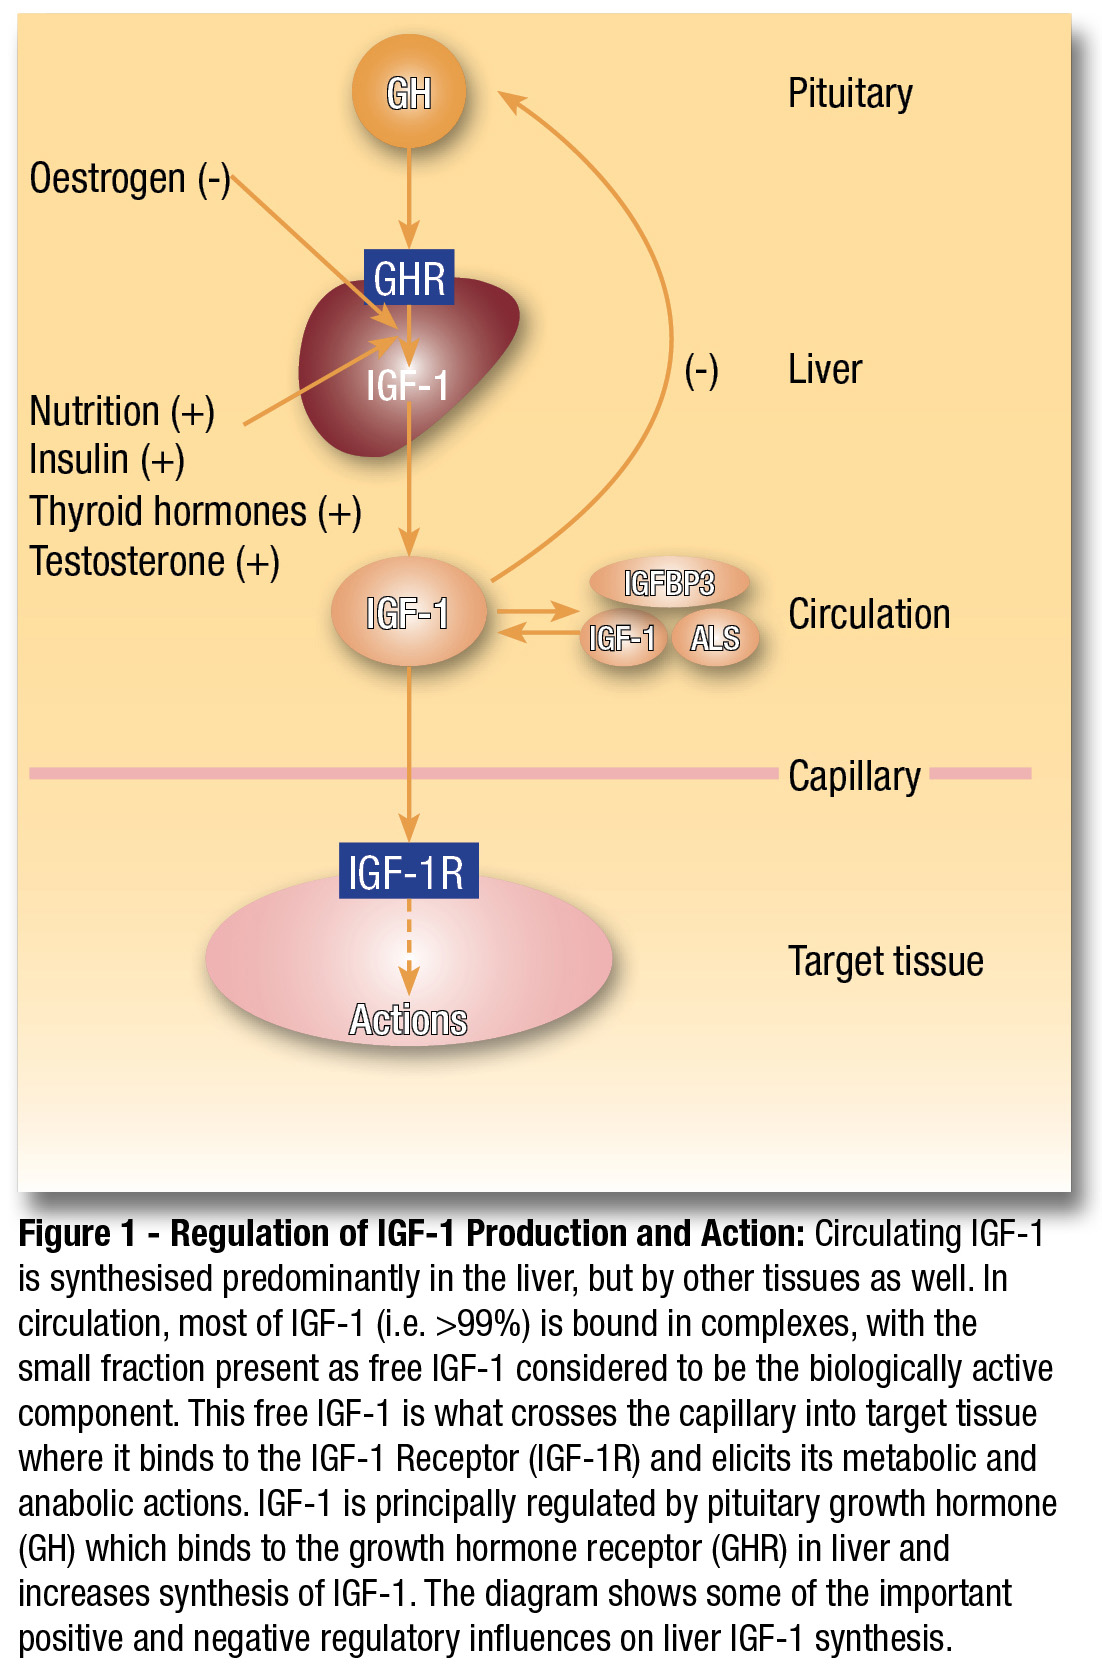 IGF-1 Functions and Actions Diagram